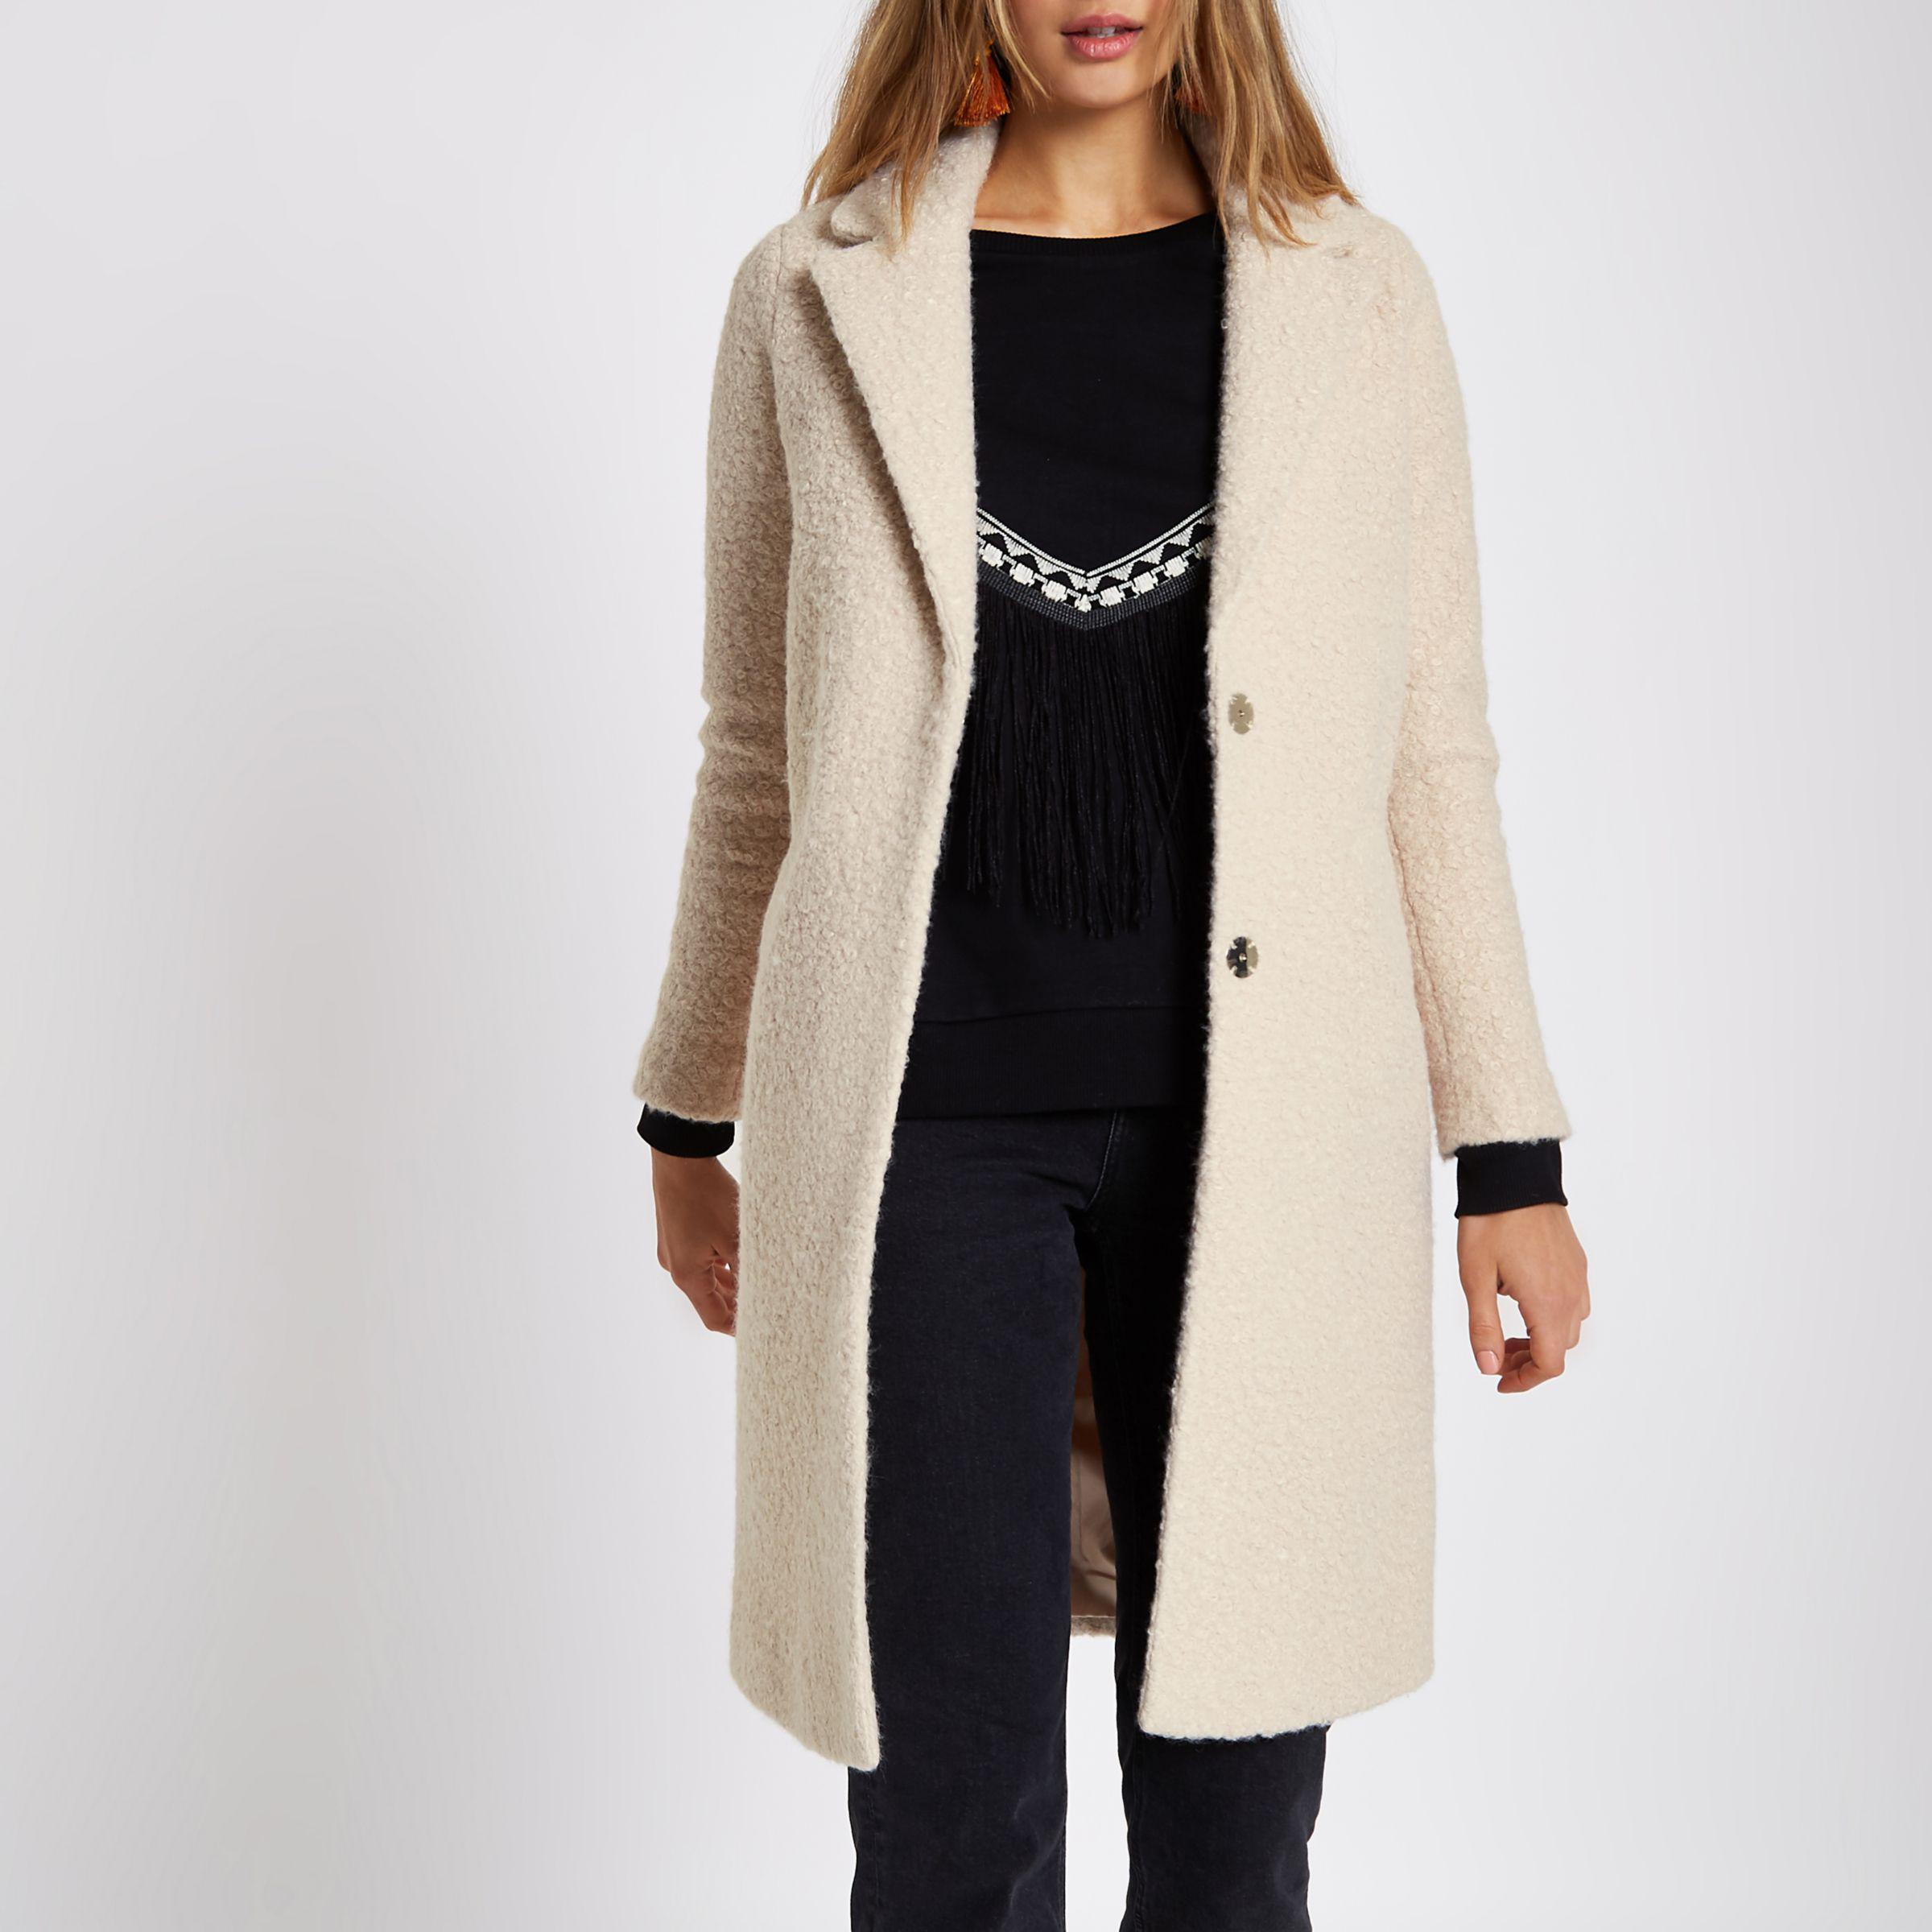 buy good factory outlet new lifestyle River Island Synthetic Cream Boucle Coat in Natural - Lyst